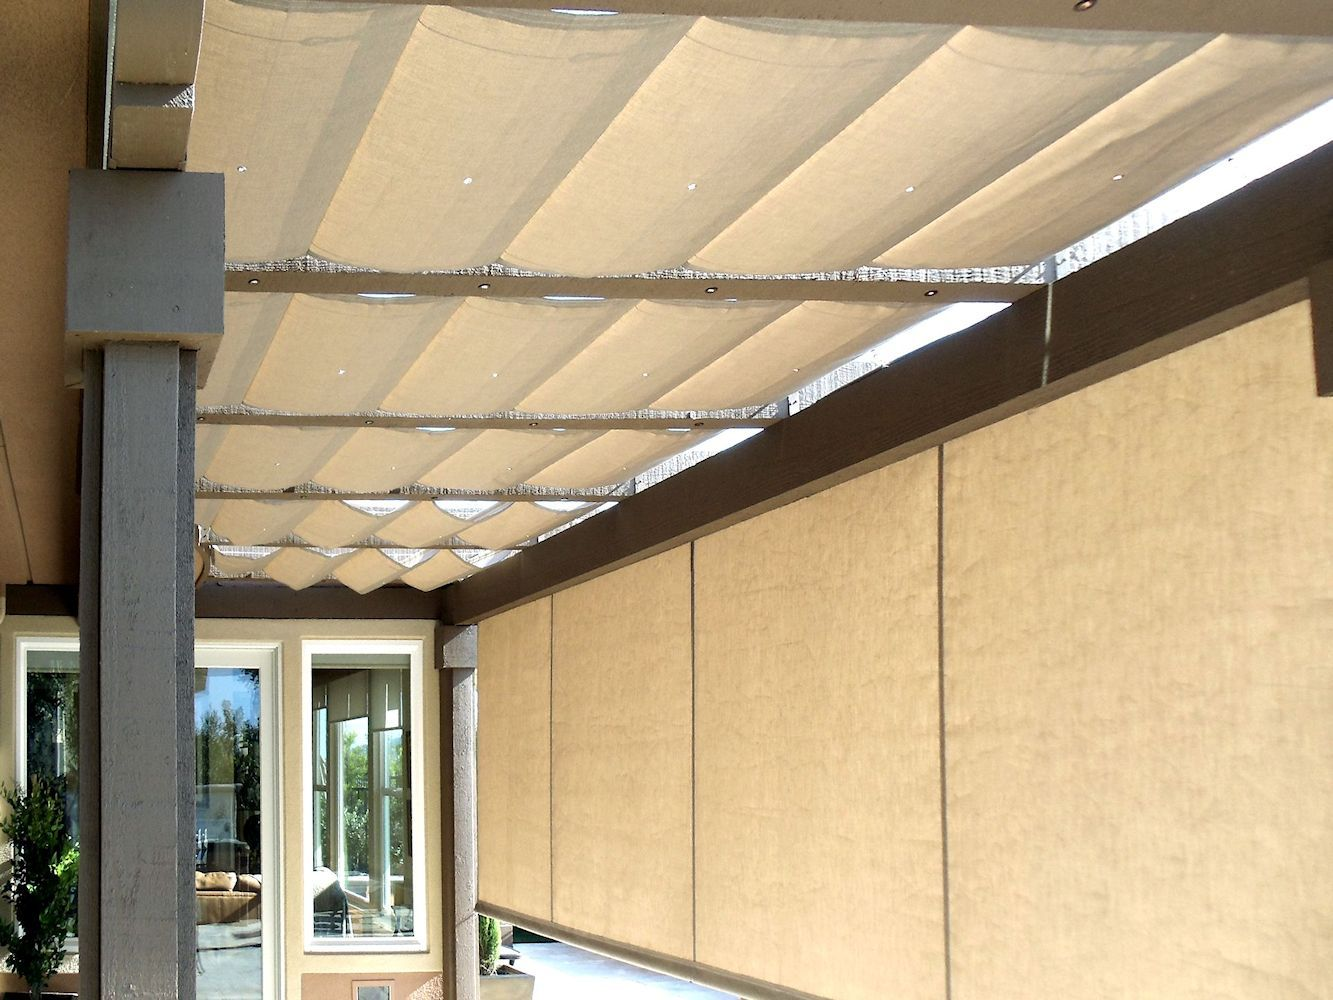 Slide Wire Cable Awnings By Superior Awning Let The Sun Shine Slide Wire Cable Awnings Outdoor Awnings Slide Wire Canopy